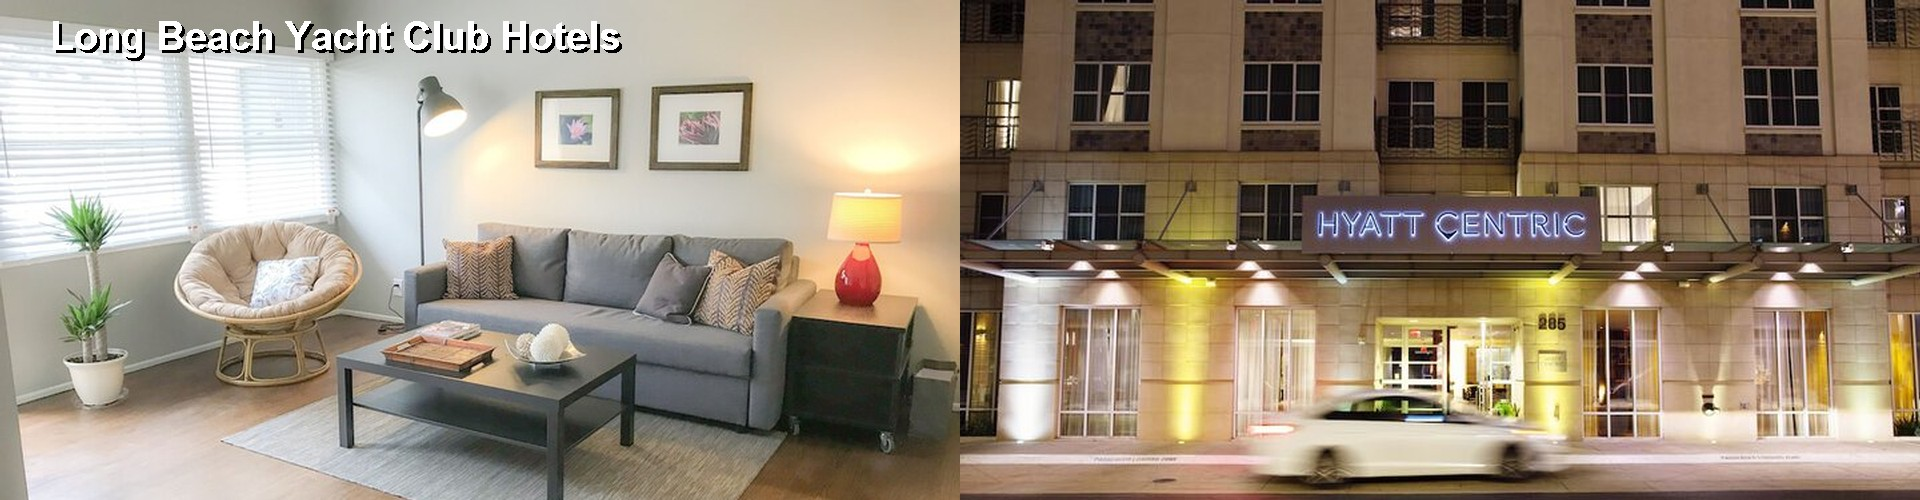 5 Best Hotels near Long Beach Yacht Club